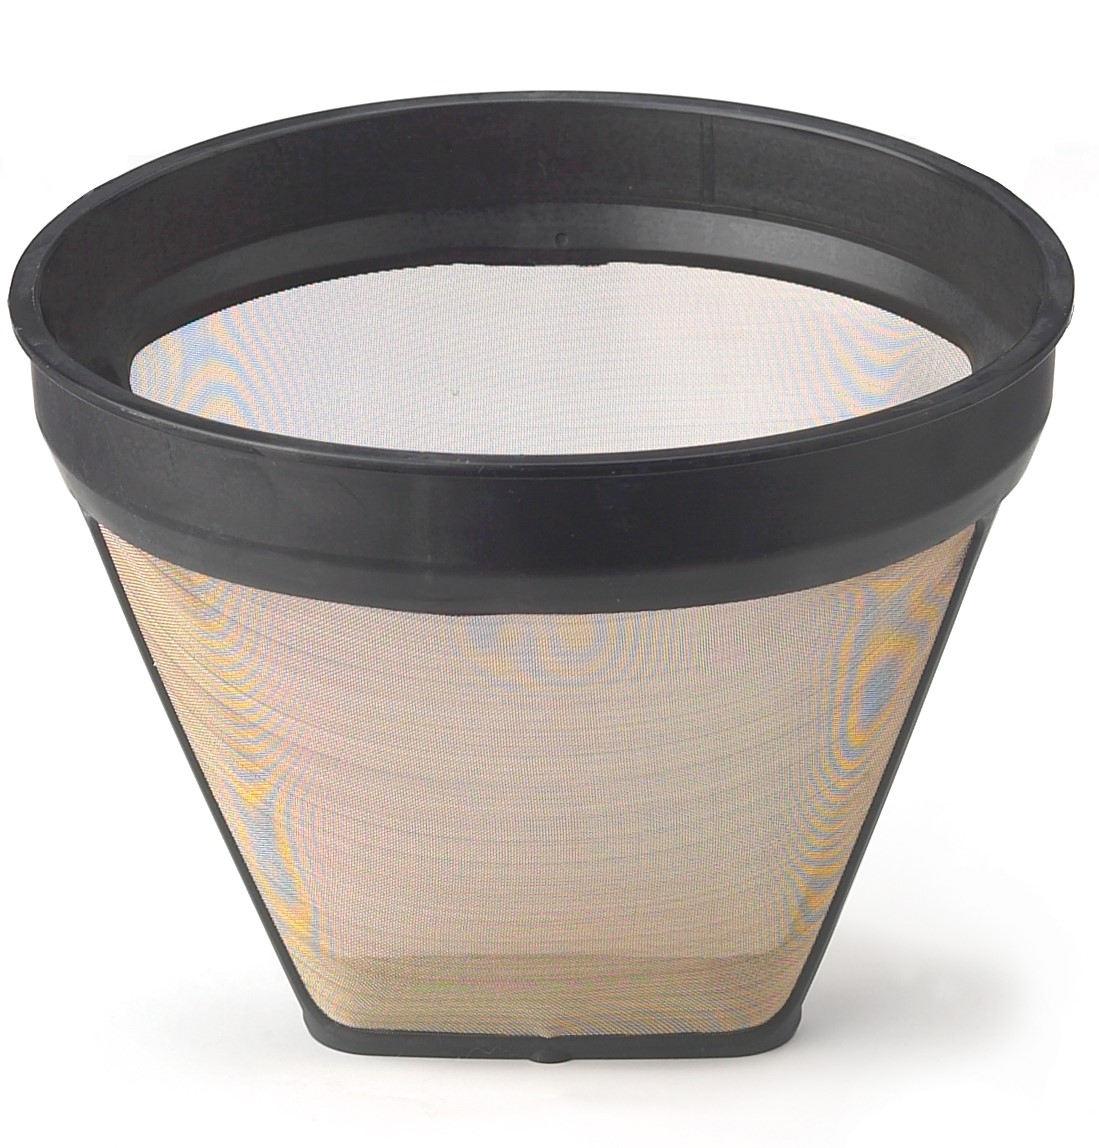 HIC Gold Tone Reusable Coffee Filter, Number 4-Size Filter, Brews 8 to 12-Cups by HIC Harold Import Co.